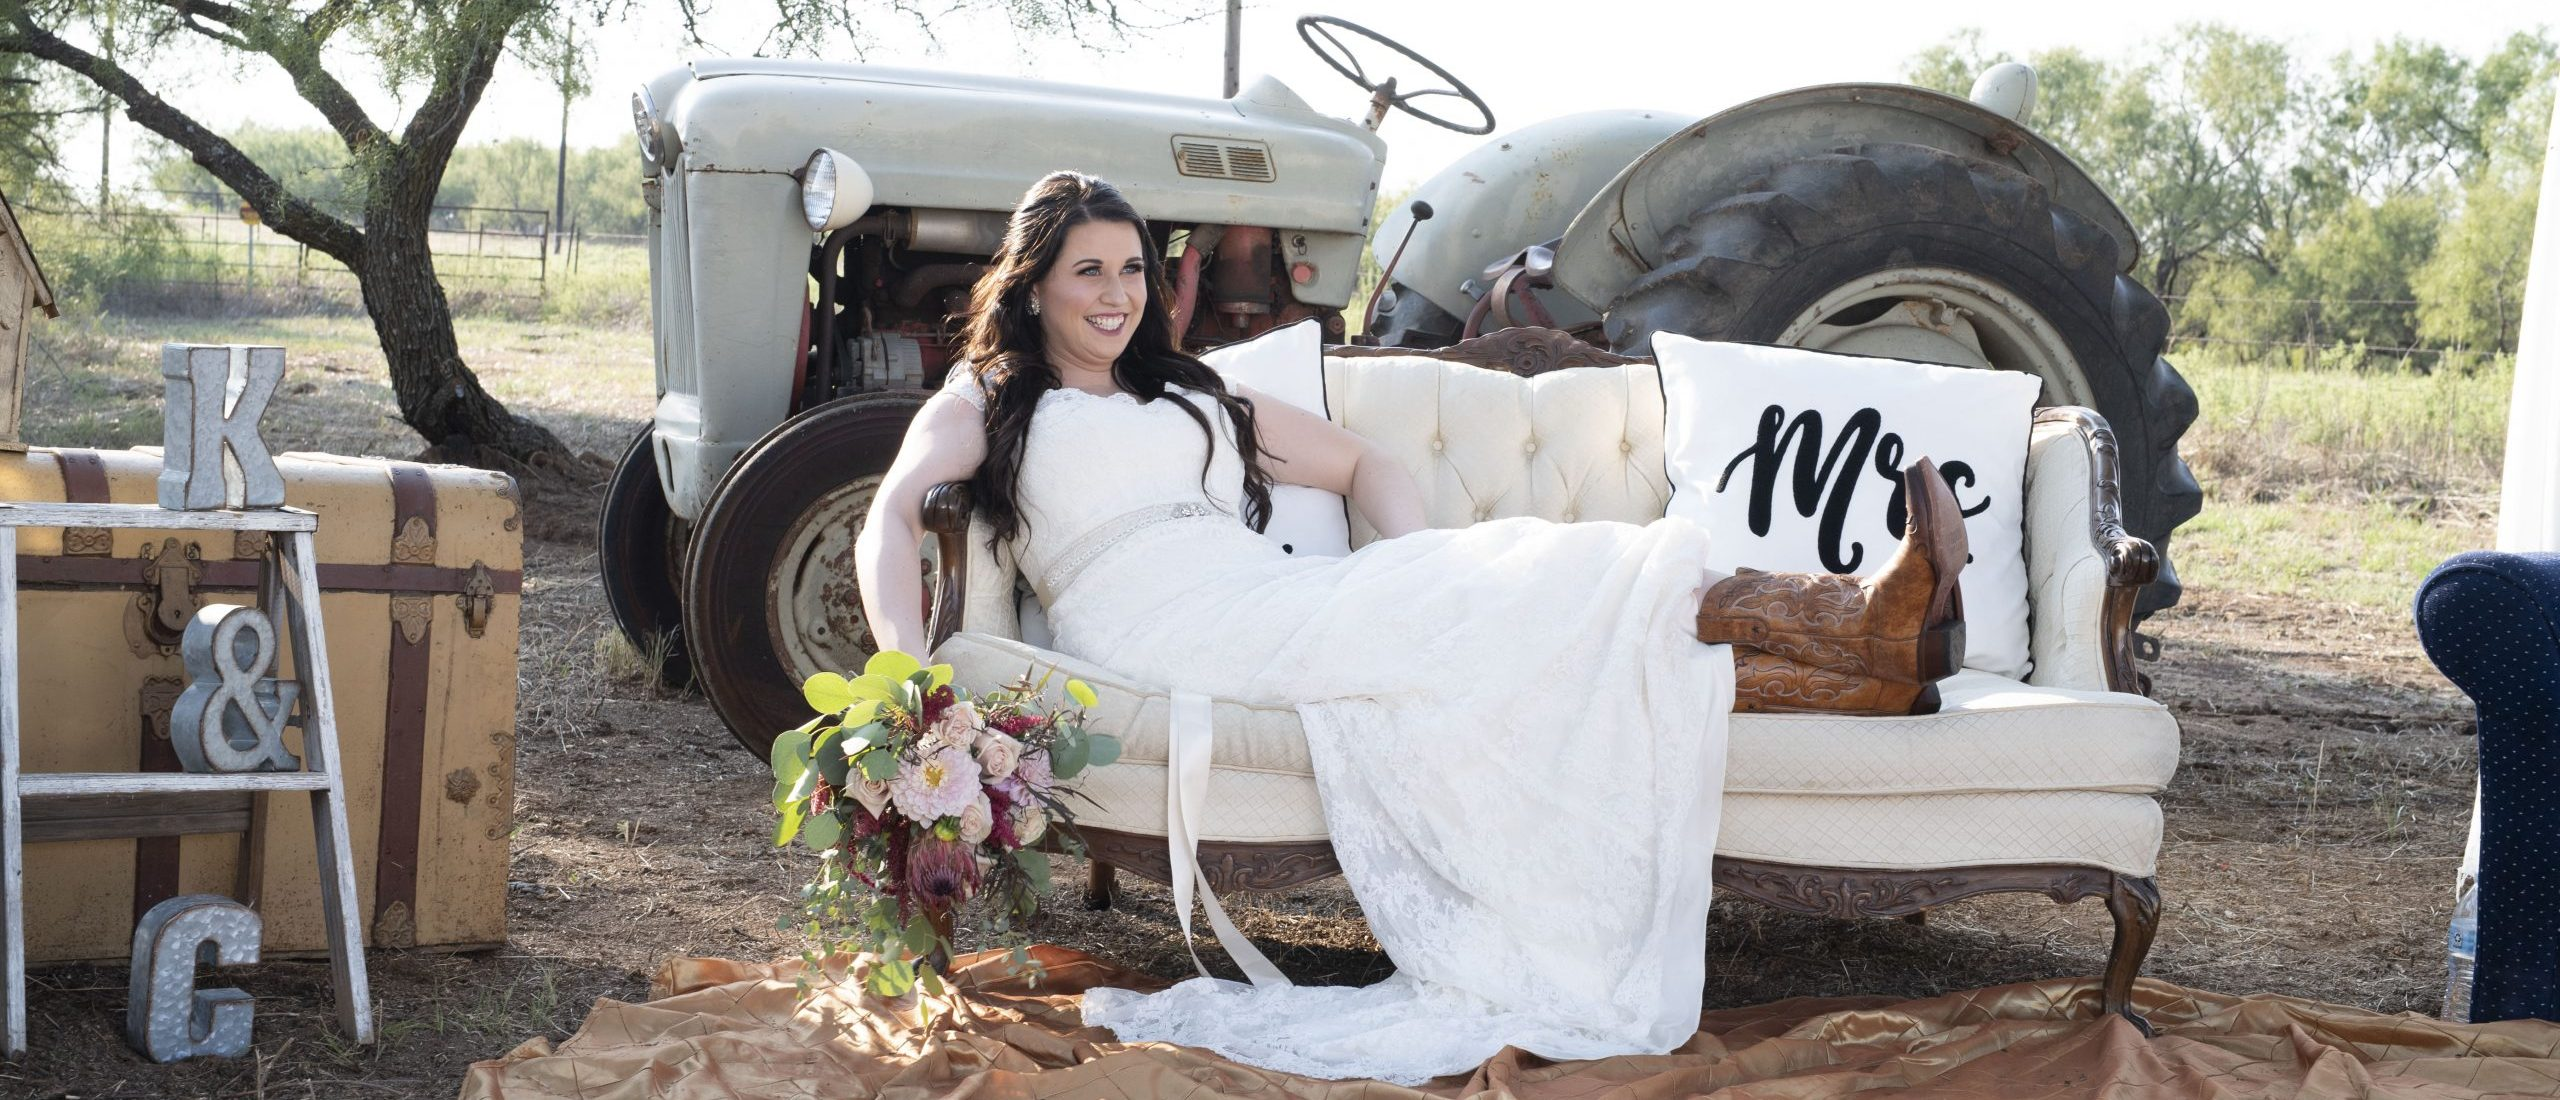 bride sitting on couch in wedding dress rustic hart ranch